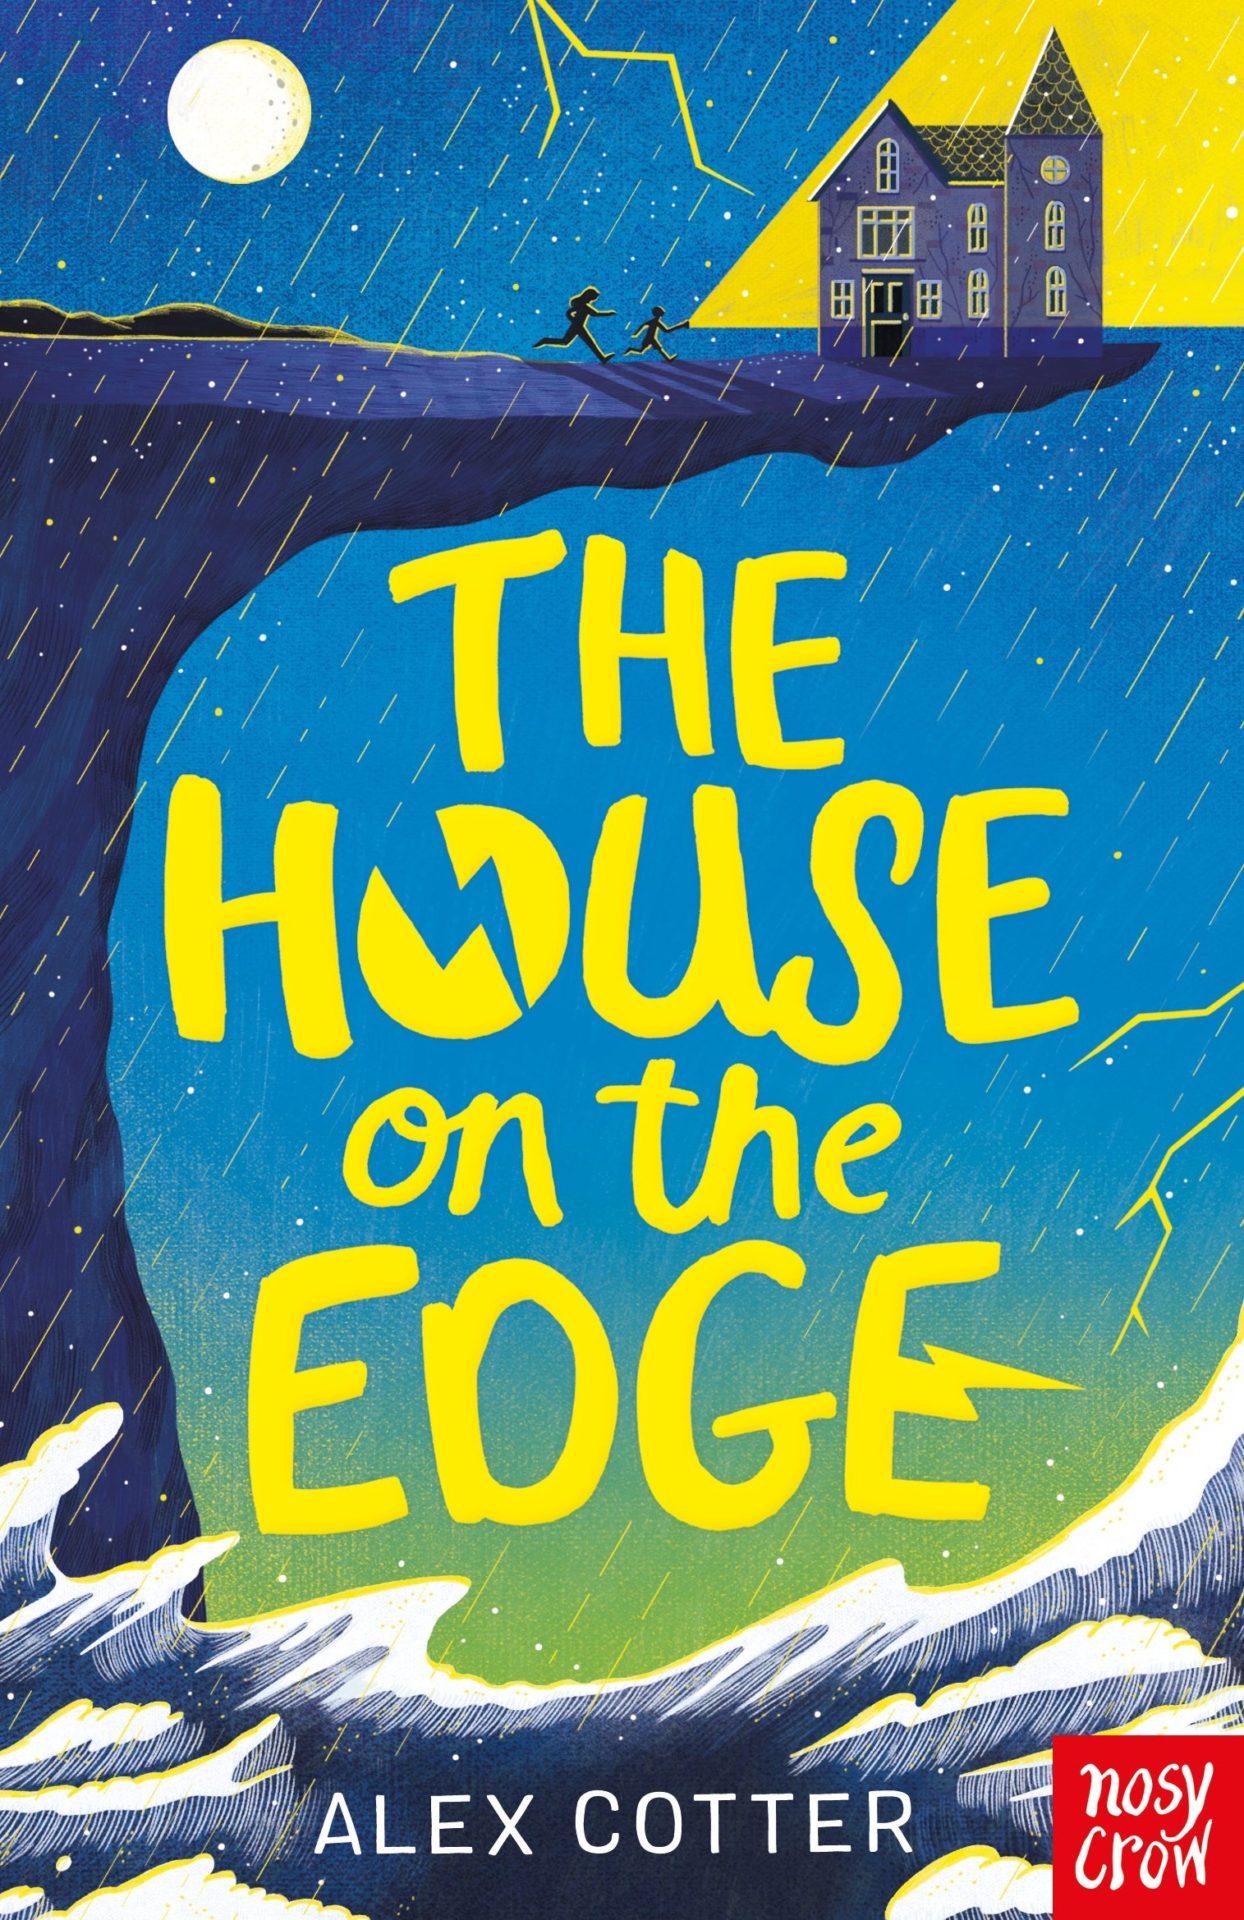 The House on the Edge by Alex Cotter